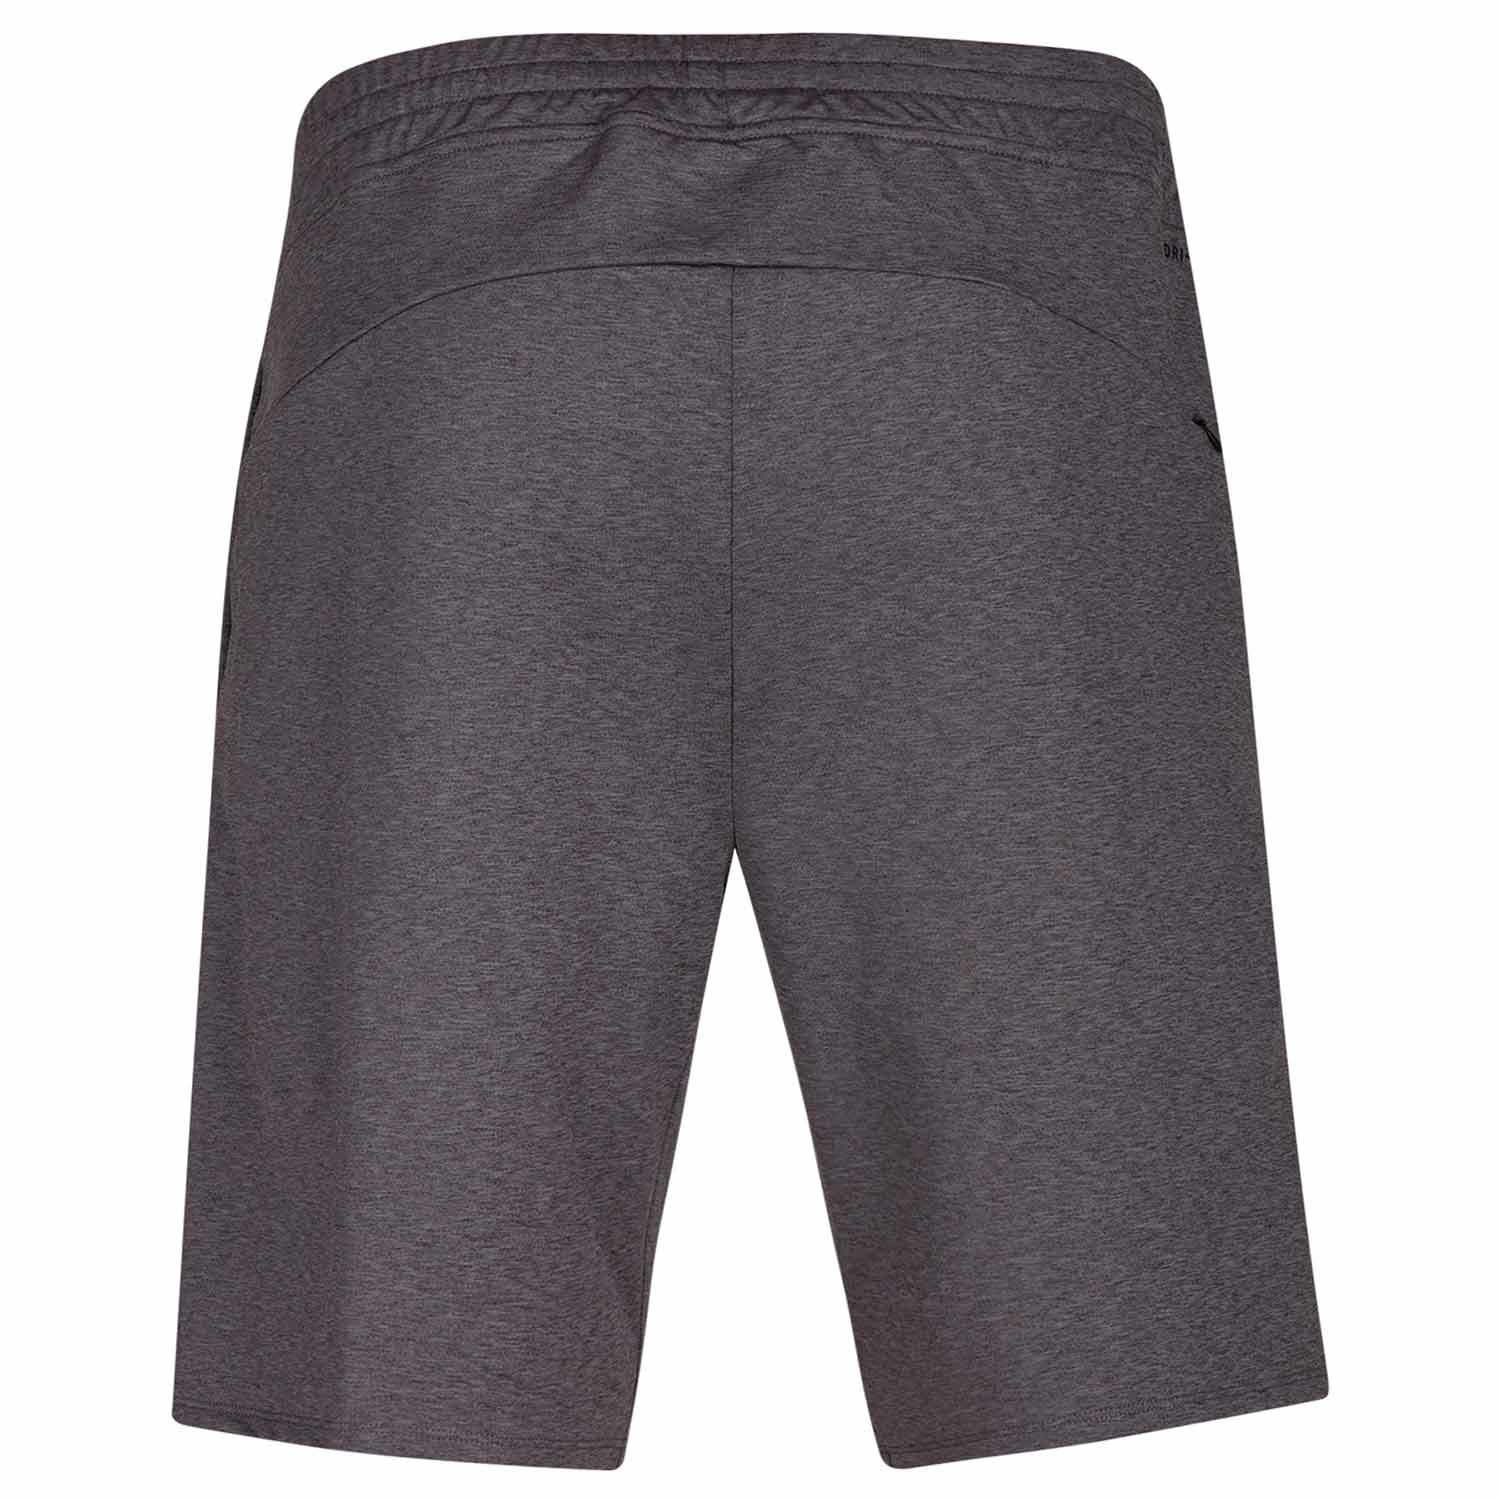 Men's Hurley West Fit Marine Dri Shorts Expedition g0wq1nwOp